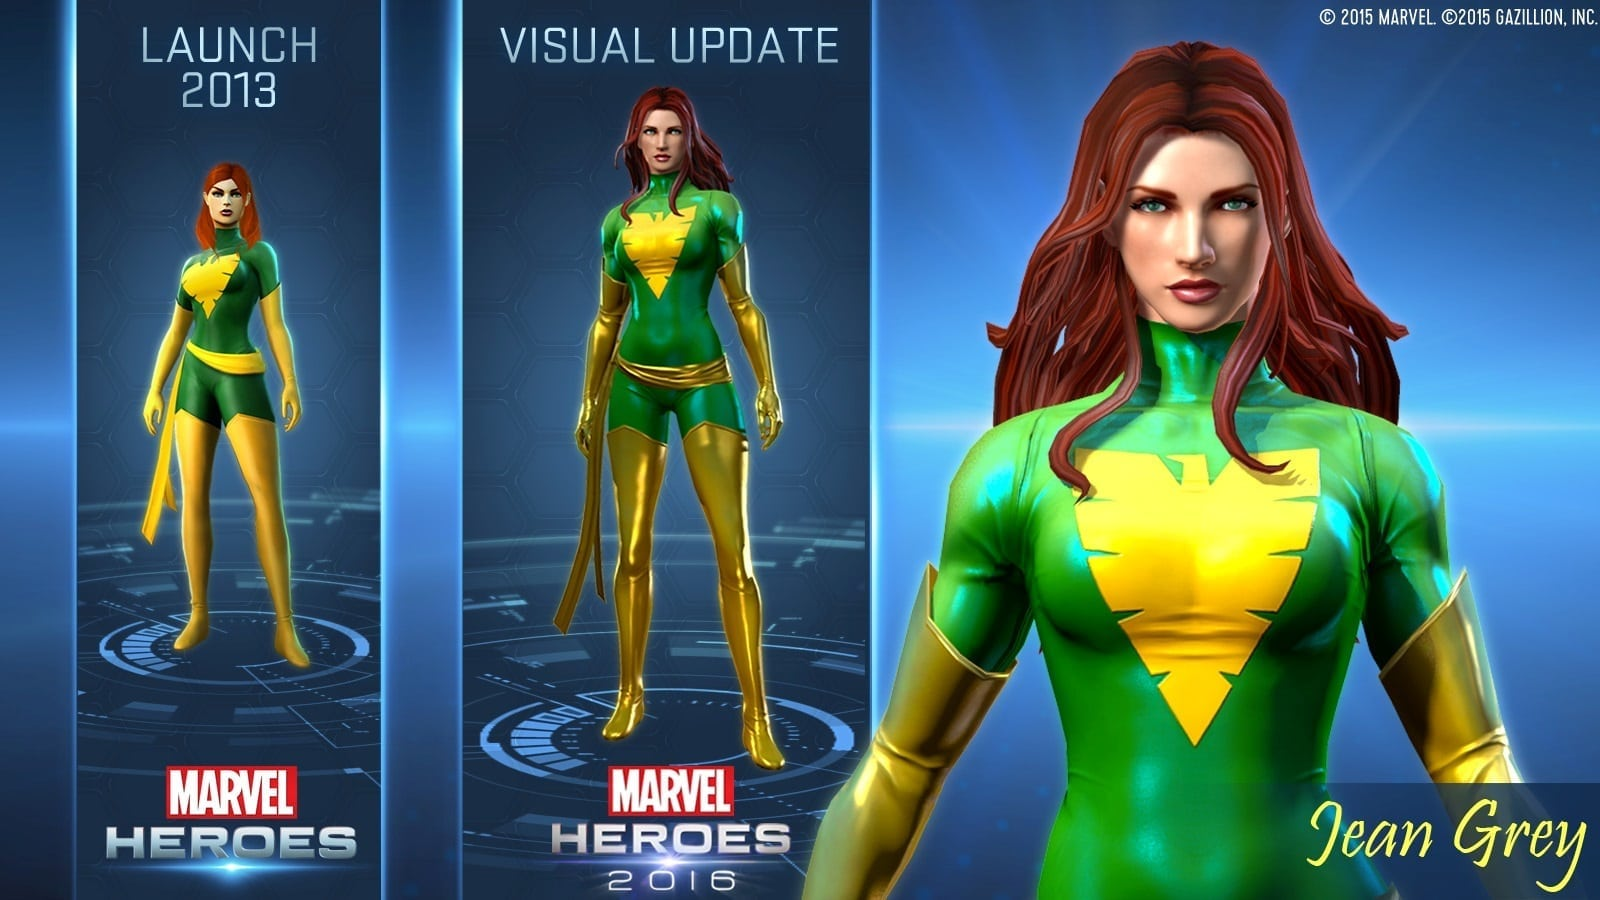 Marvel Heroes 2016 - Jean Grey visual update